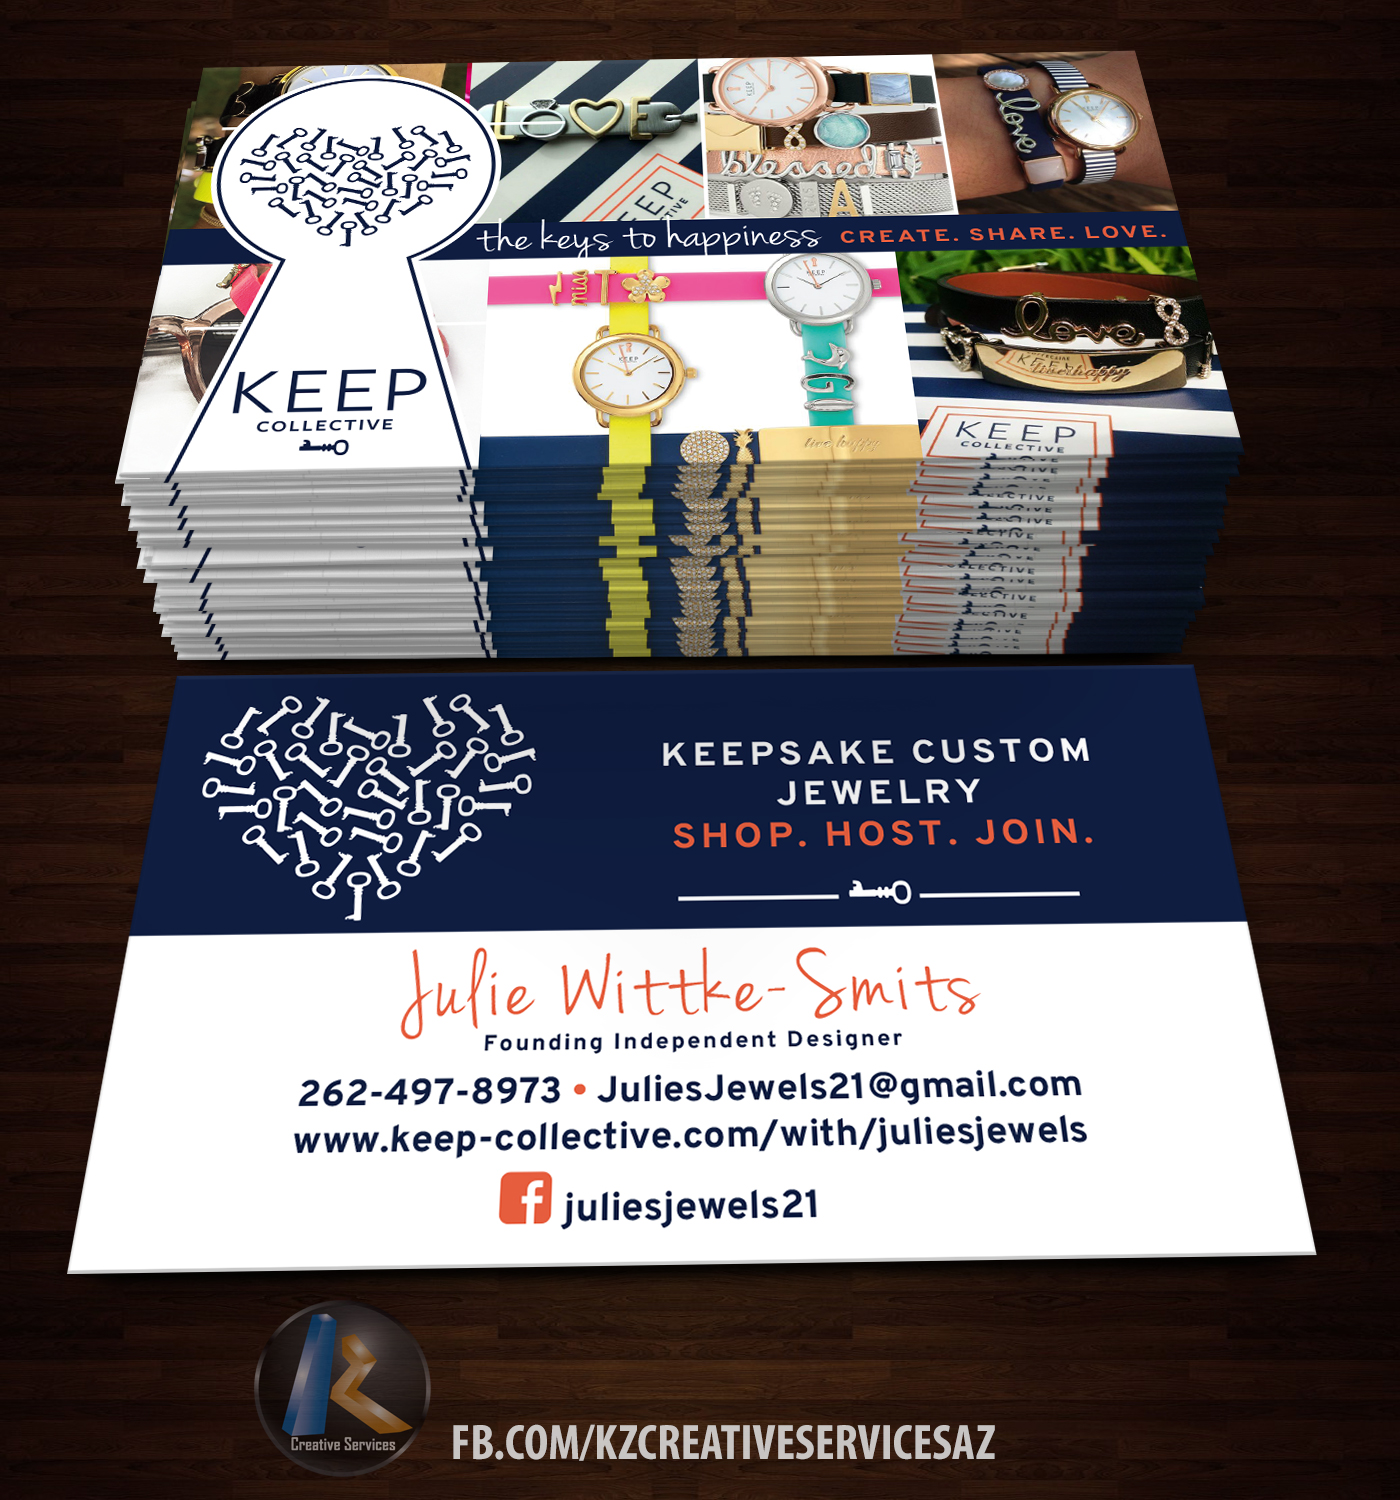 KEEP COLLECTIVE Business Cards style 2 · KZ Creative Services